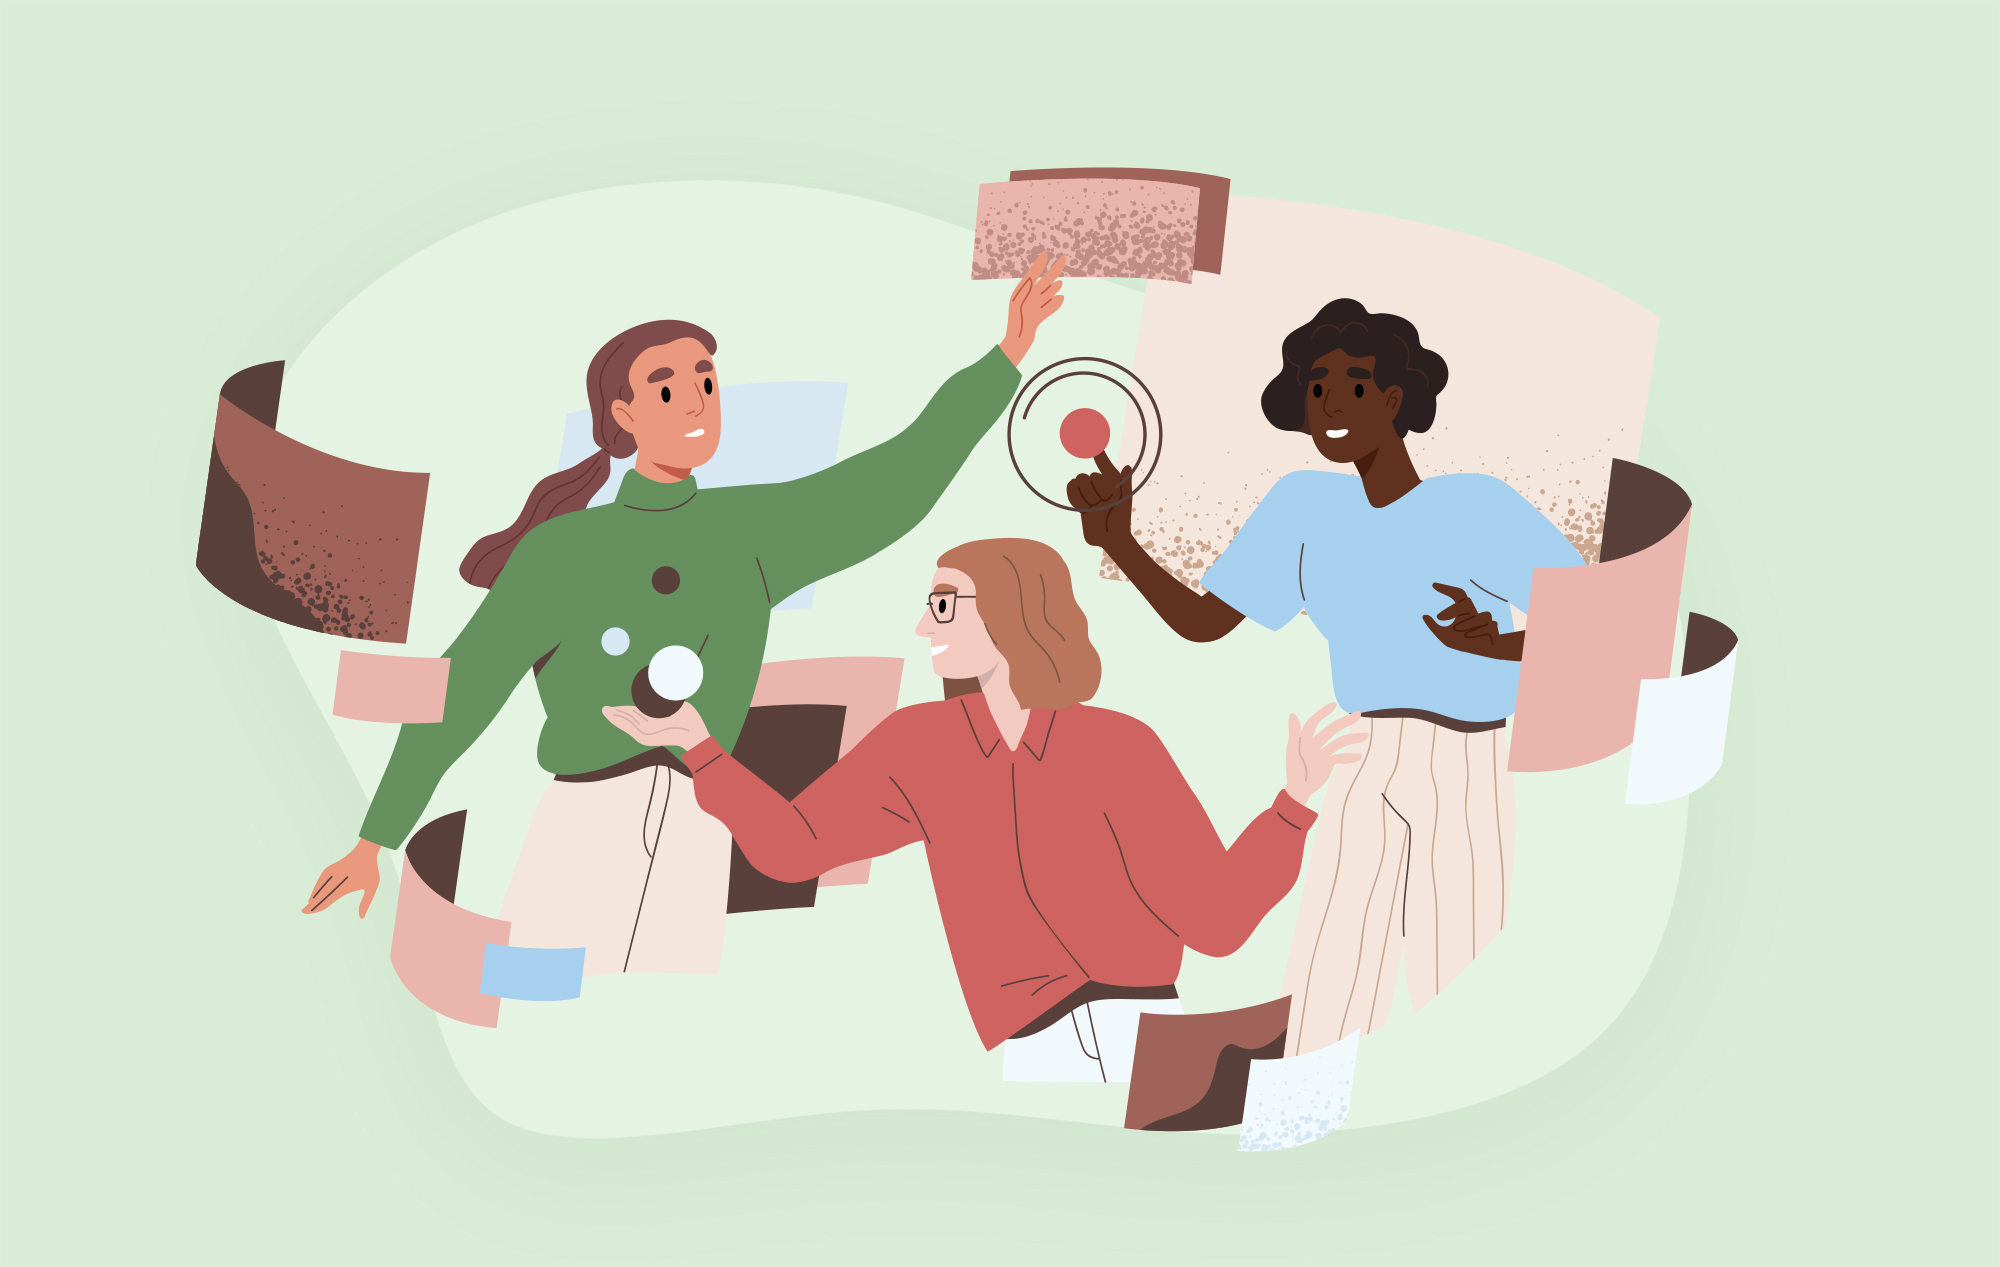 Illustration of three women reaching out towards abstract shapes; symbolizing technology and communication.